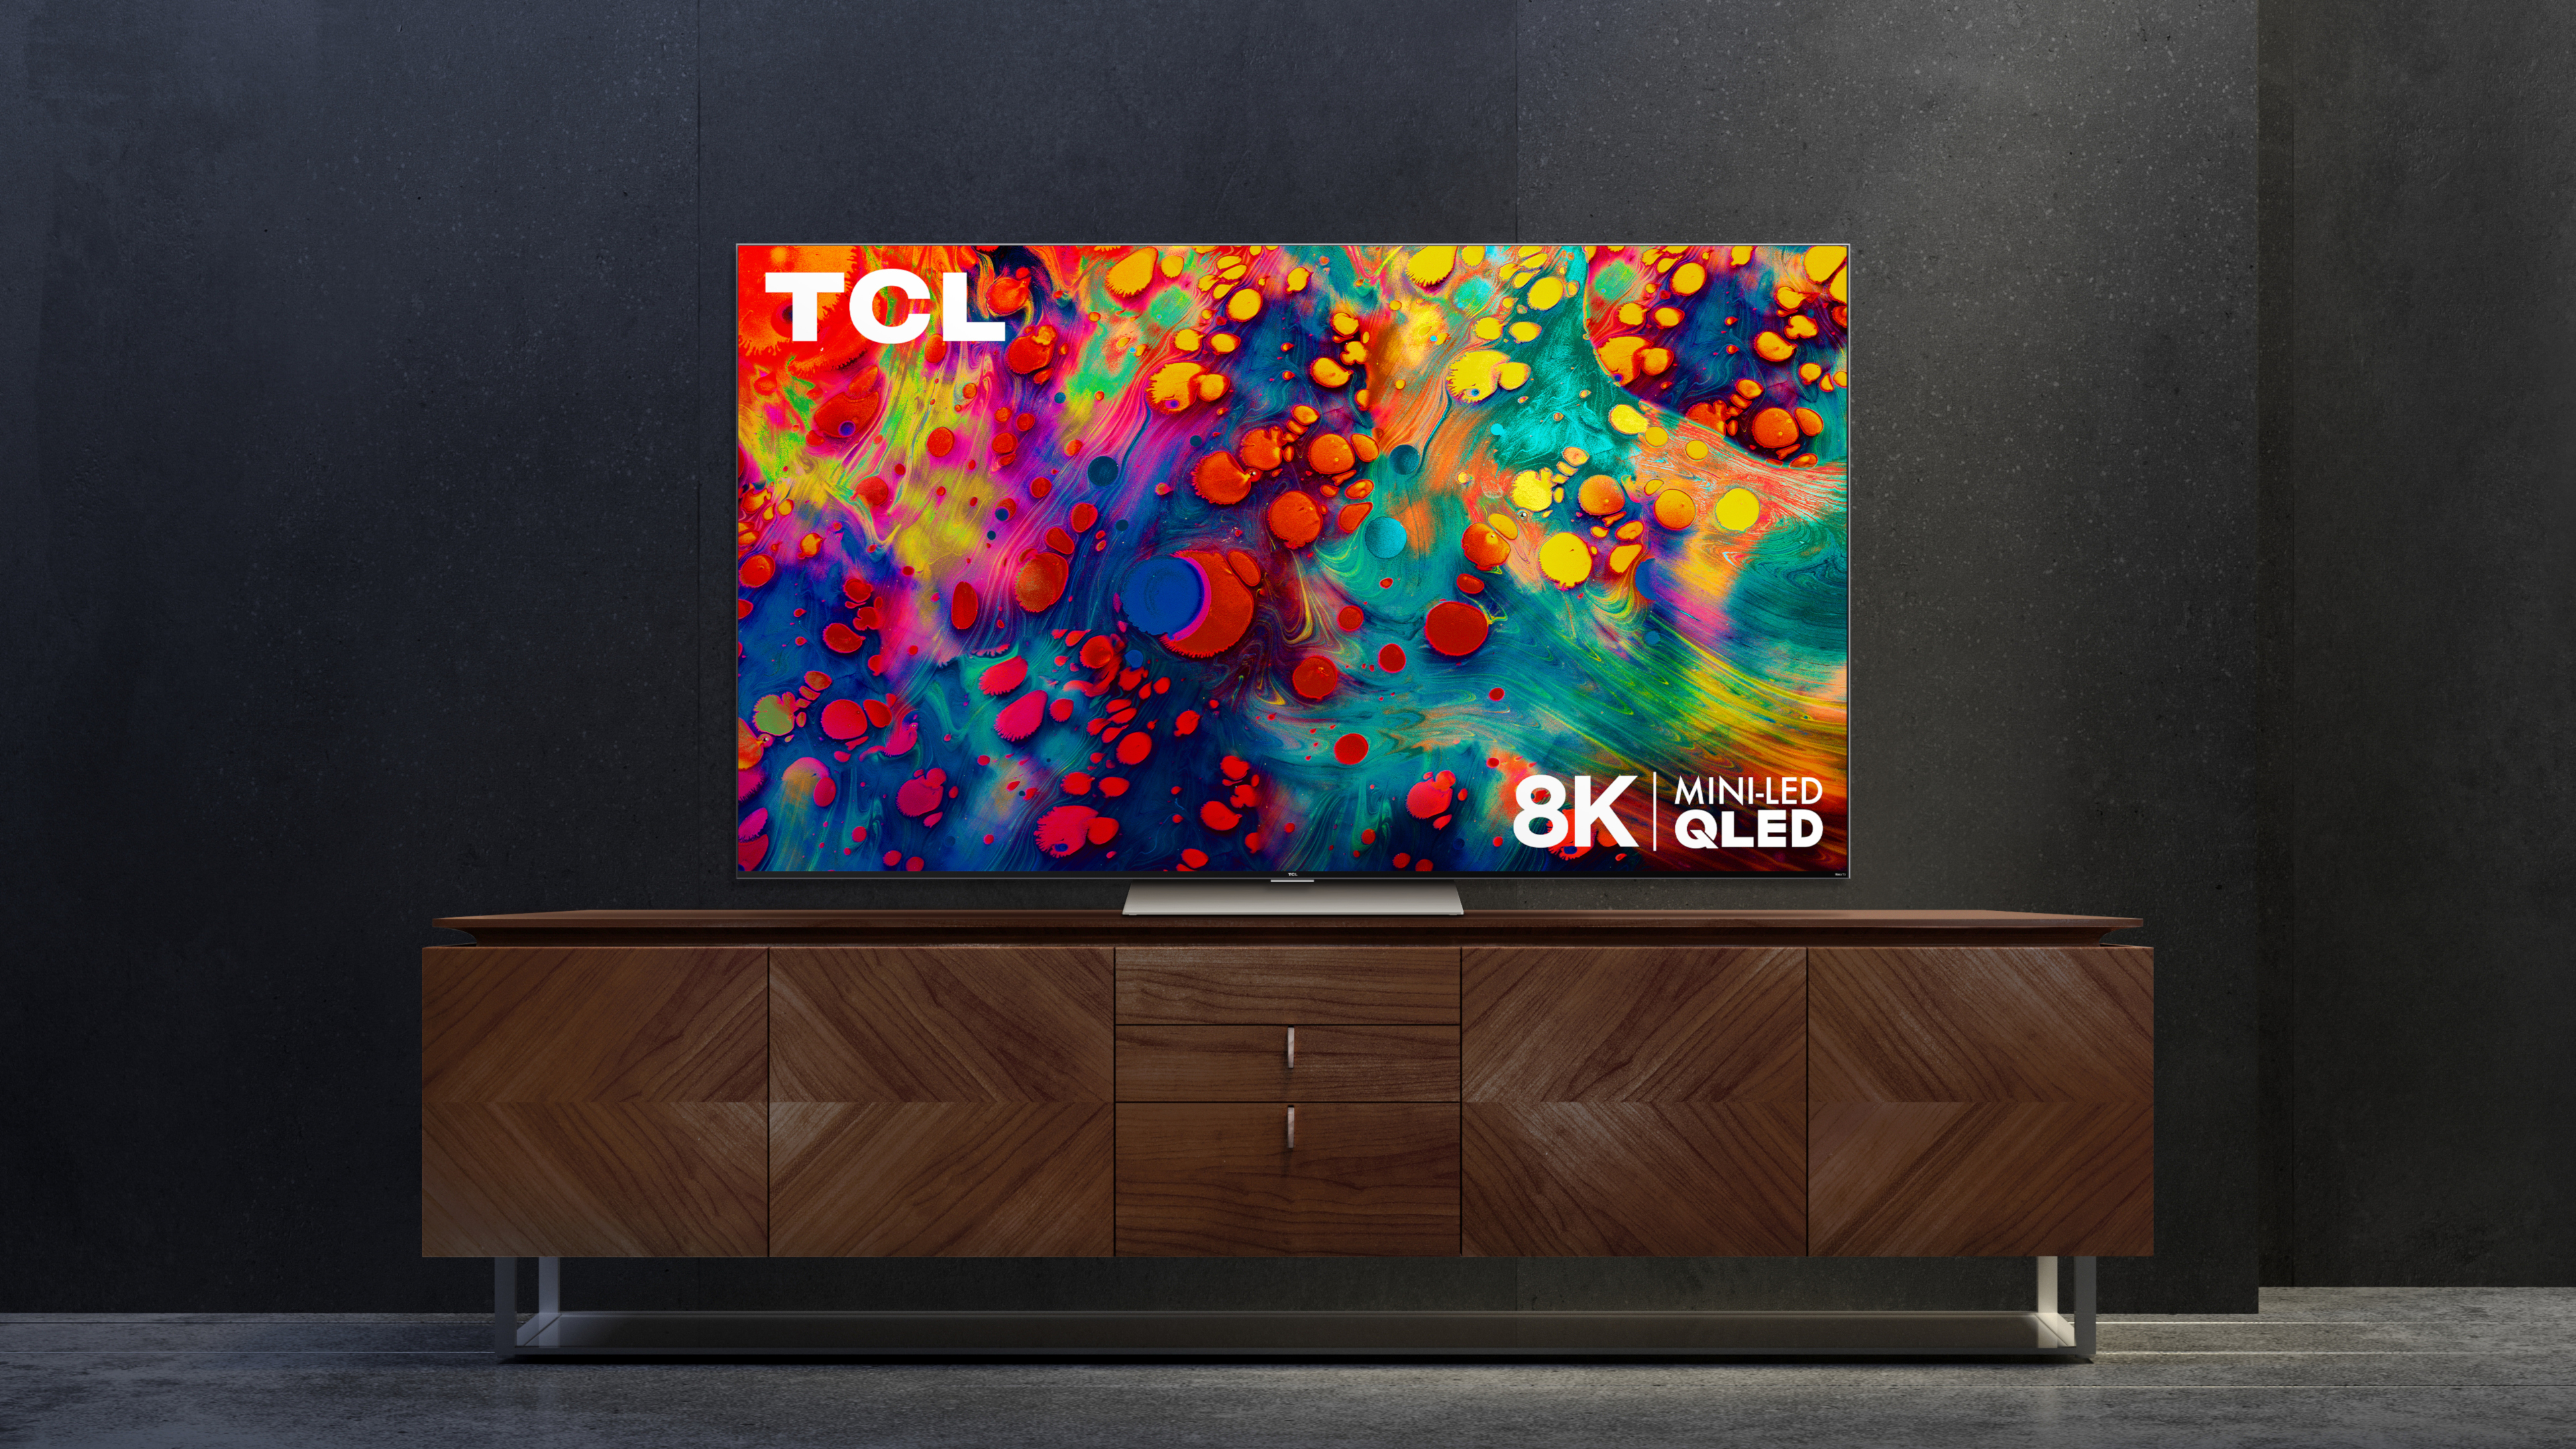 The new TCL 6-Series 8K TV with Mini LED